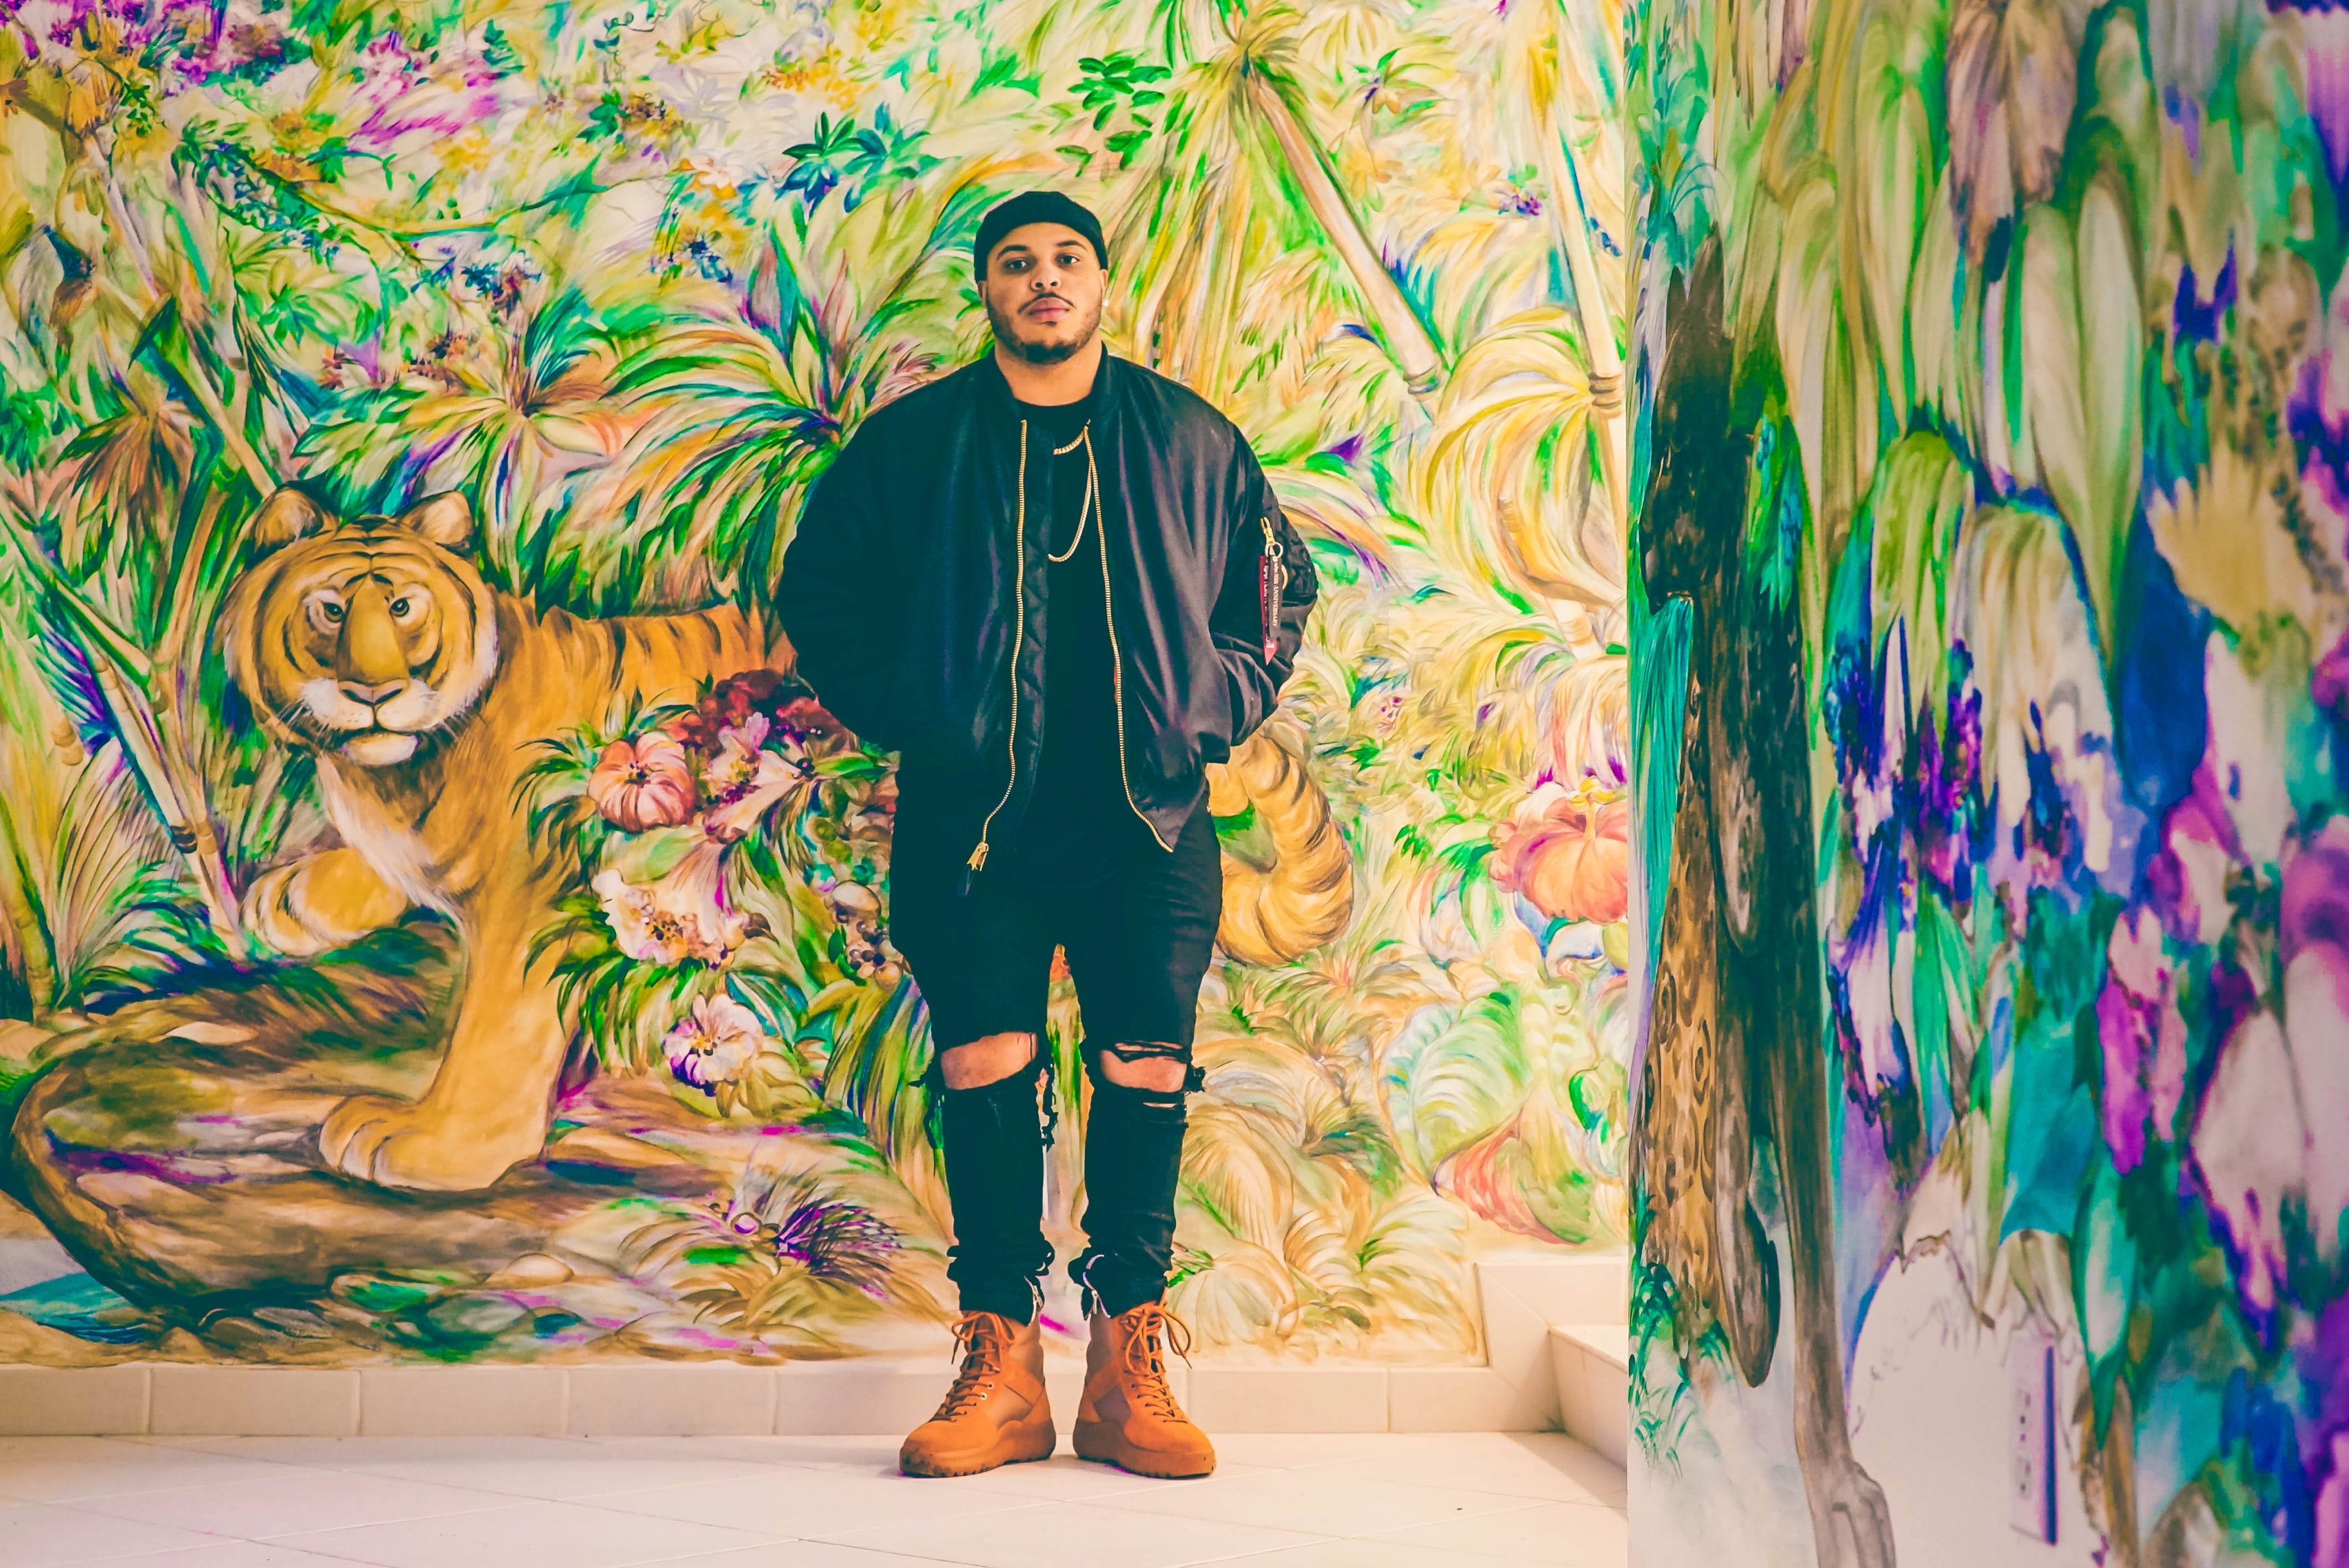 Man standing in front on a colorful mural of a tiger and jungle flowers